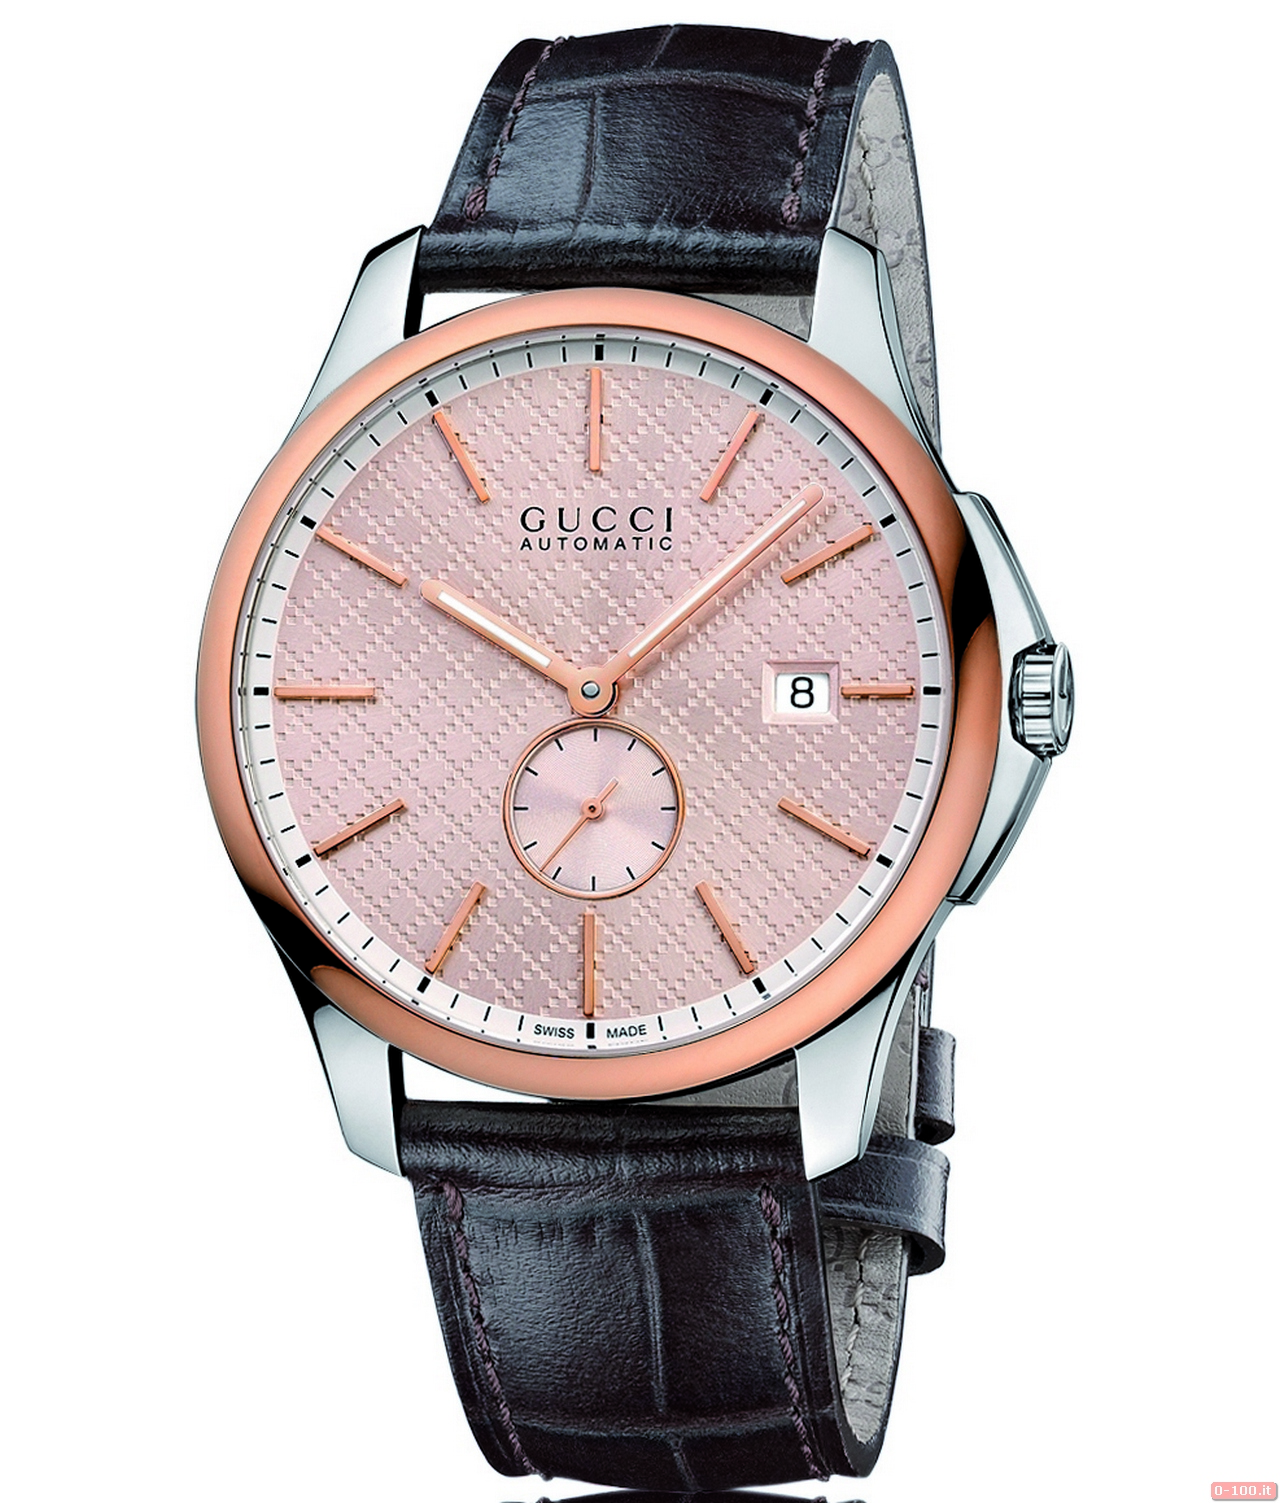 anteprima-baselworld-2014-gucci-timepieces-g-timeless-slim-automatic_0-1003